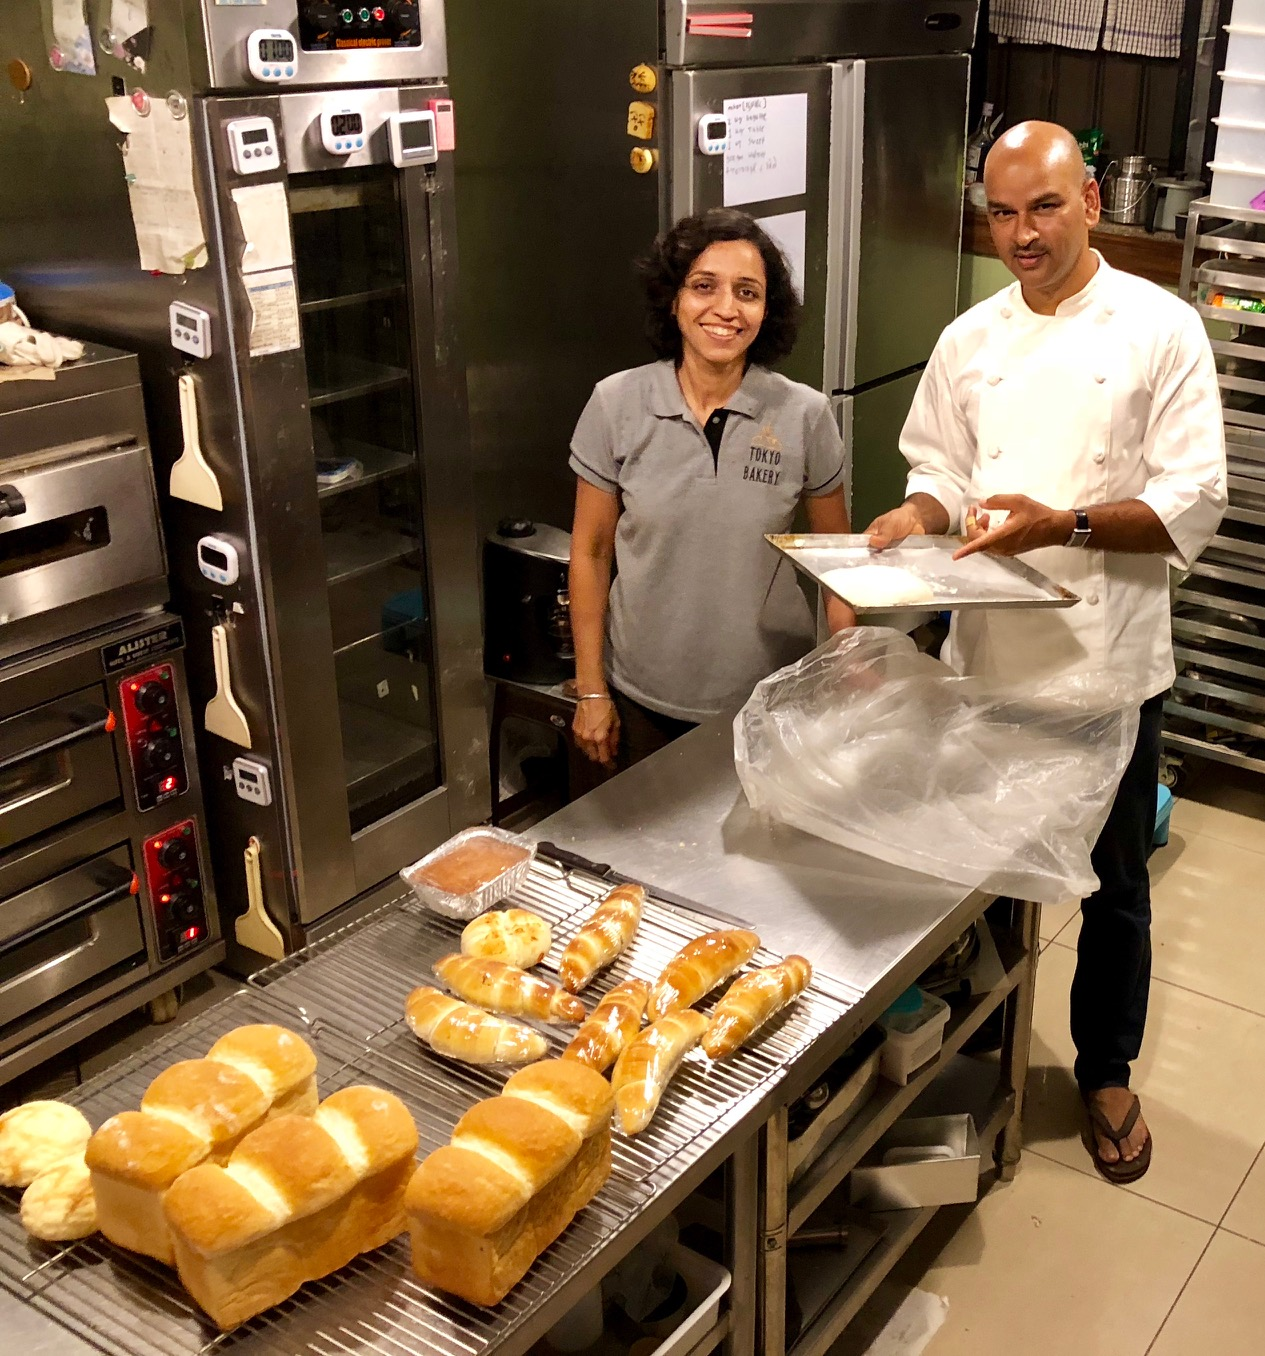 Rahul returned from Japan to Pune with extensive notes for baking the inimitable Japanese bread and shared what he had learned with Arundhati. Their first attempt was a failure